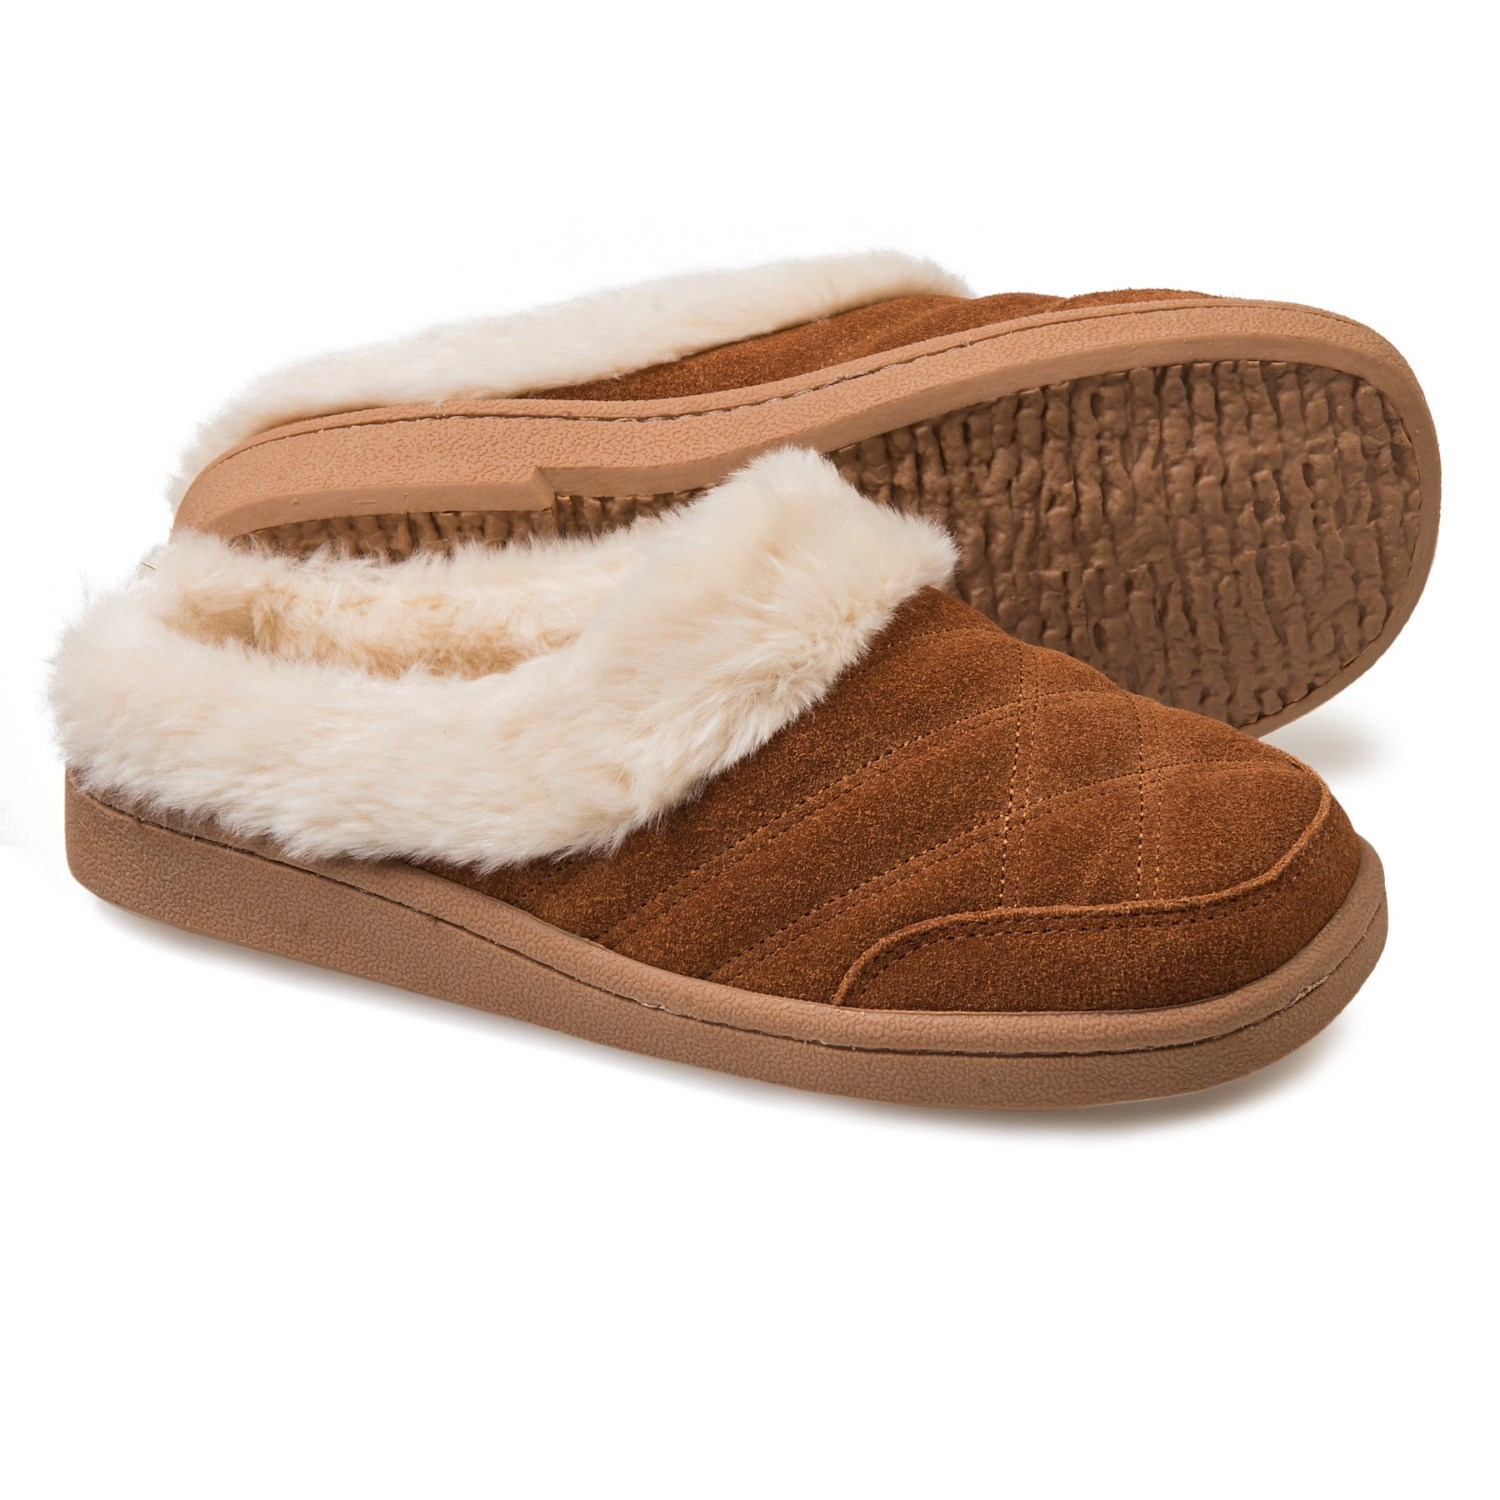 Clogs Slipper Shoes Men